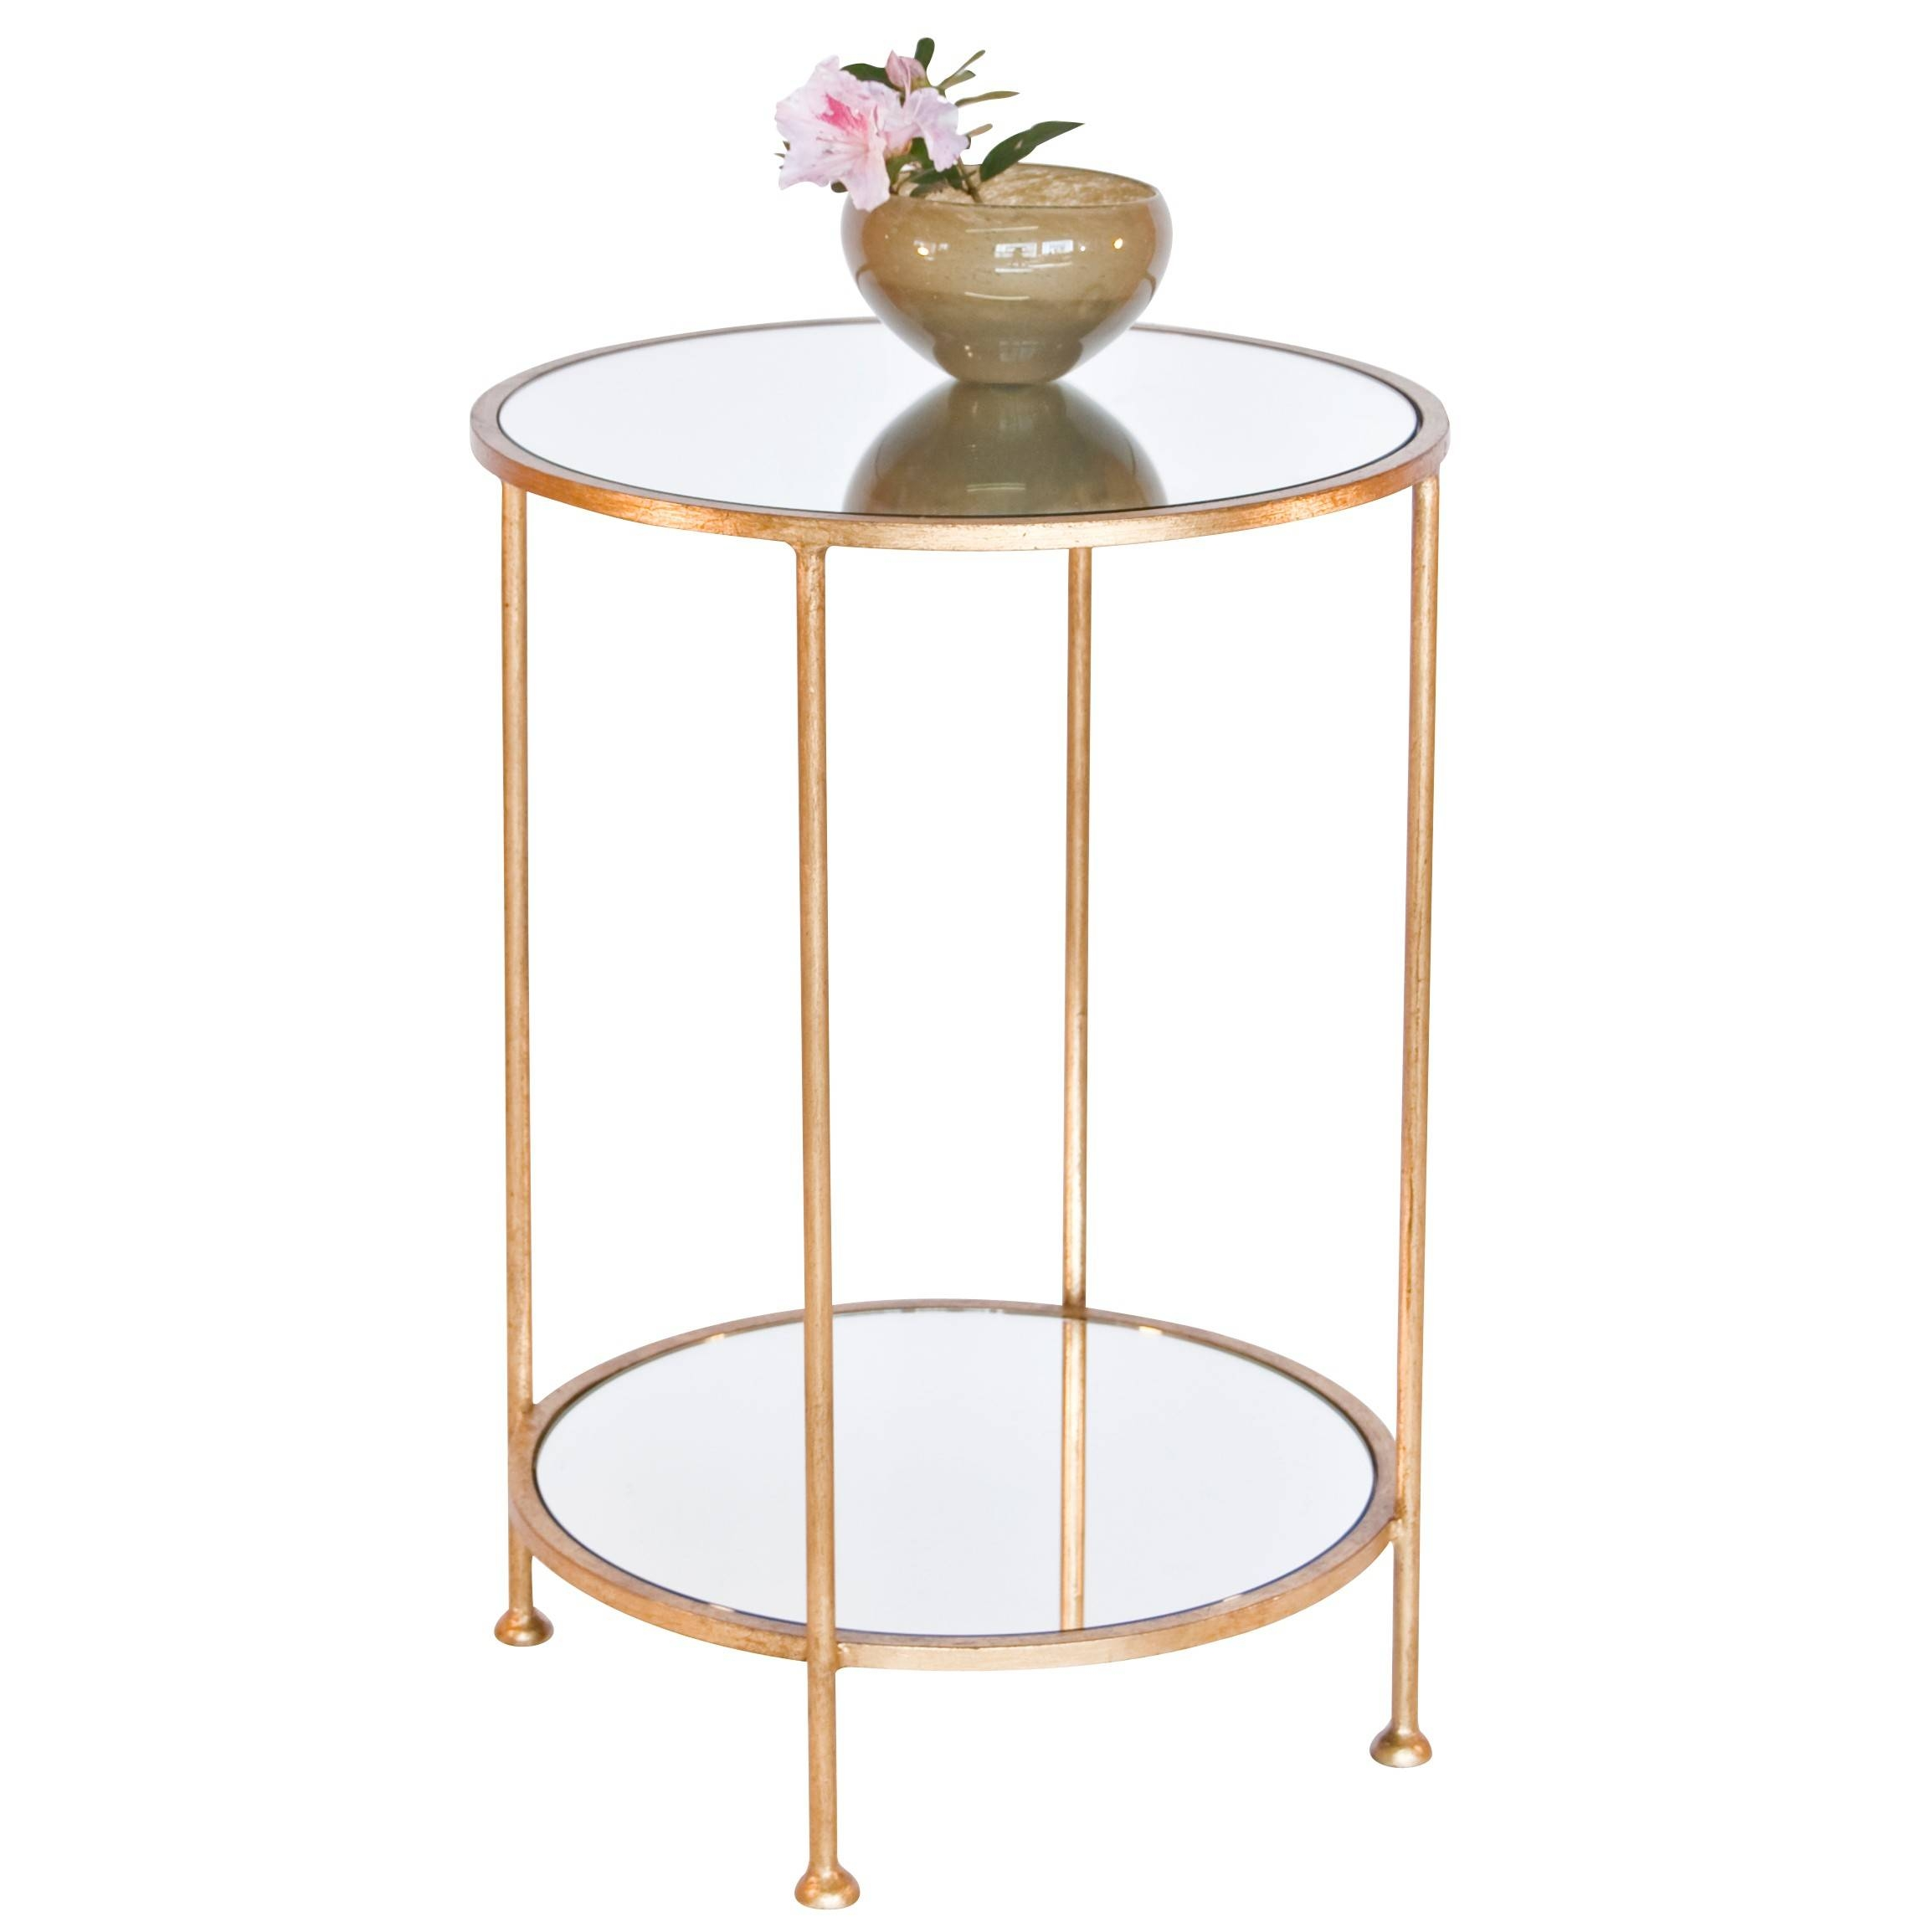 Worlds Away Chico Small 2 Tier Gold Leaf Side Table, Mirror Top with regard to Gold Table Mirrors (Image 25 of 25)